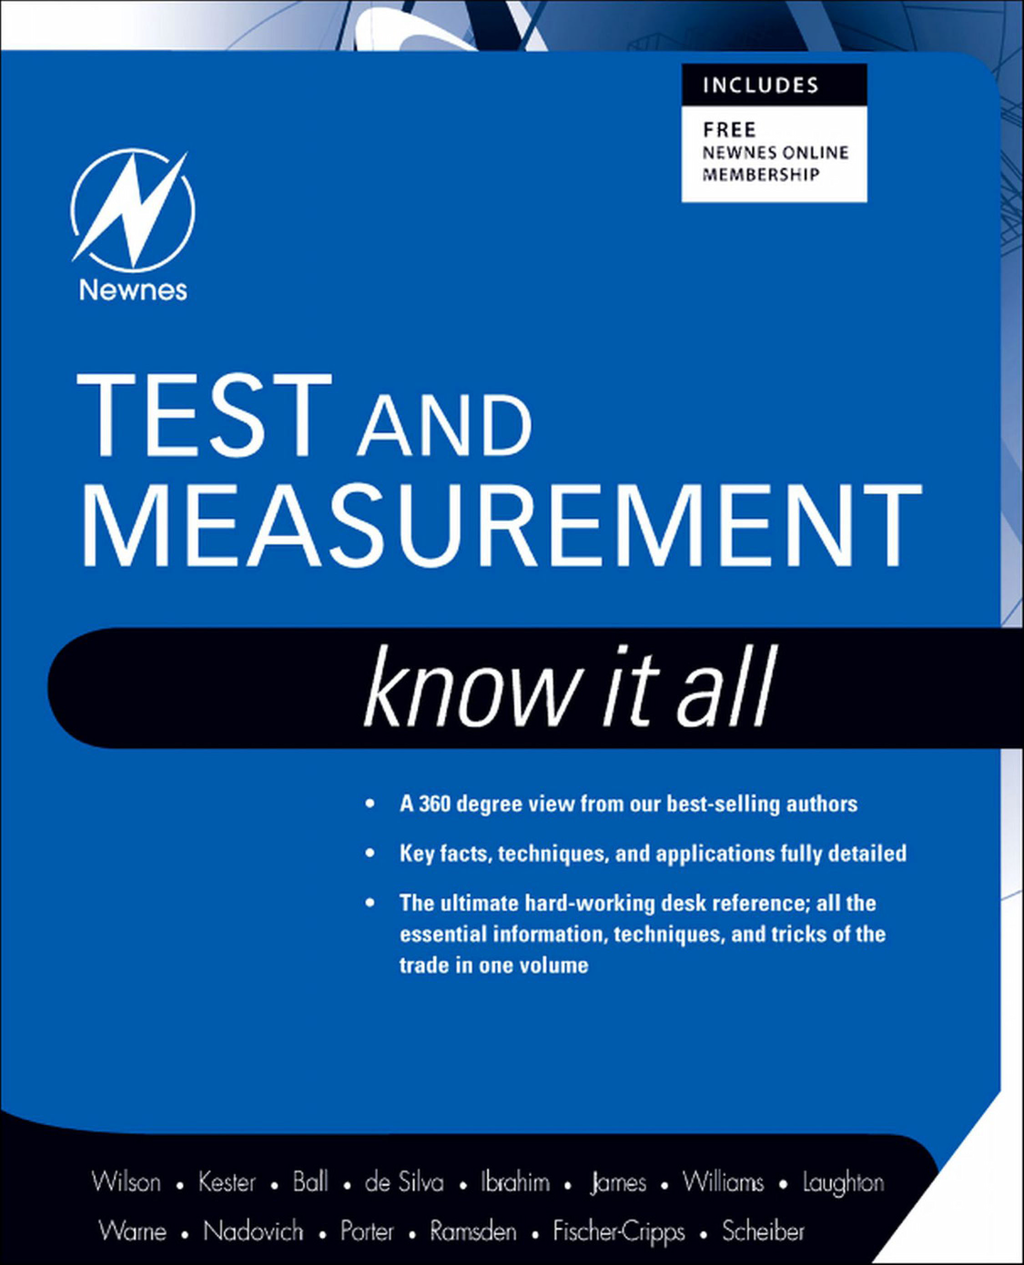 Test and Measurement: Know It All By: Creed Huddleston,Dogan Ibrahim,Edward Ramsden,Jon S. Wilson,Stuart Ball